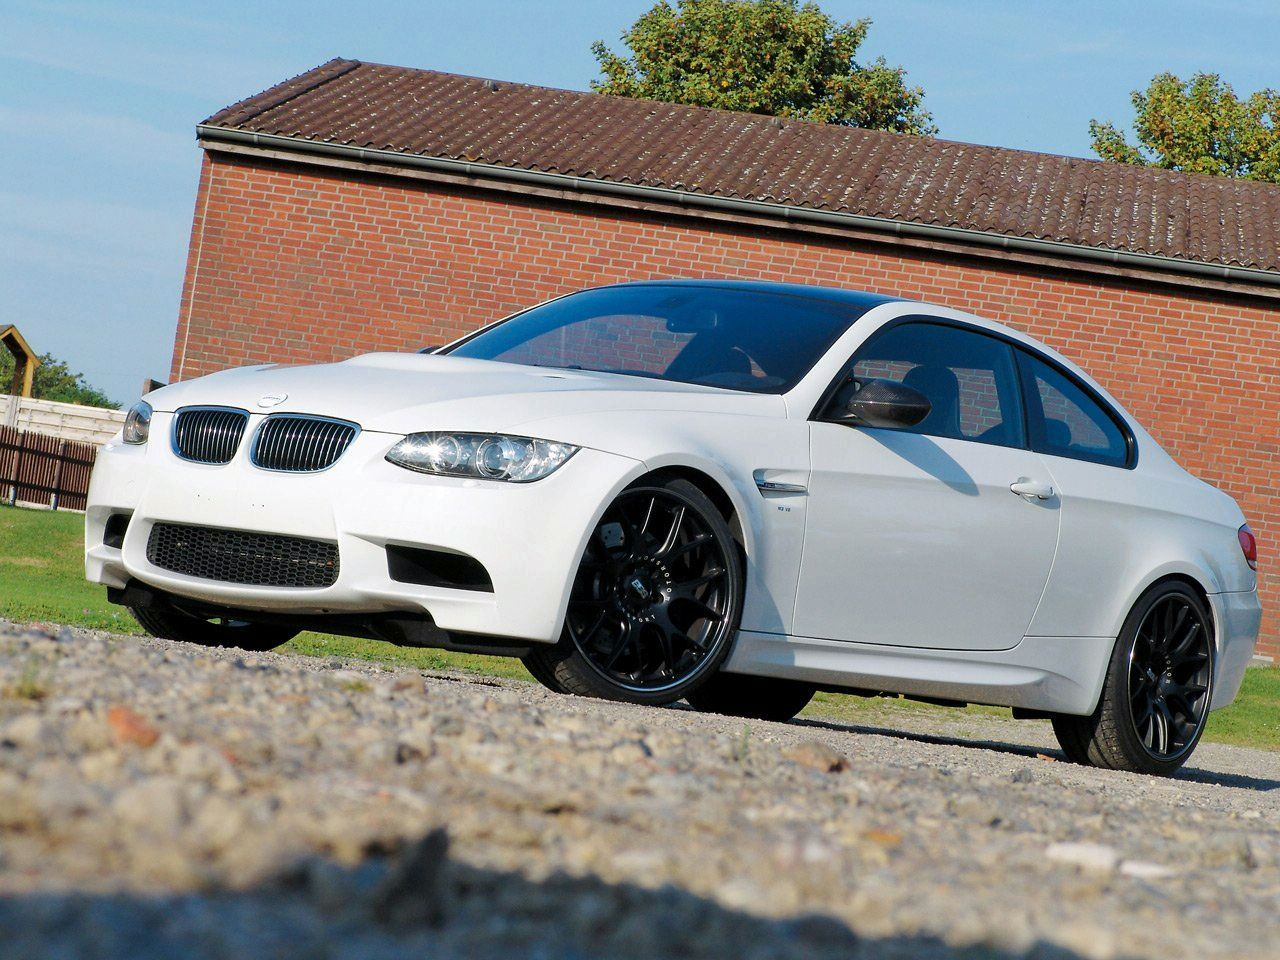 Manhart Racing Tuning Package for BMW M3